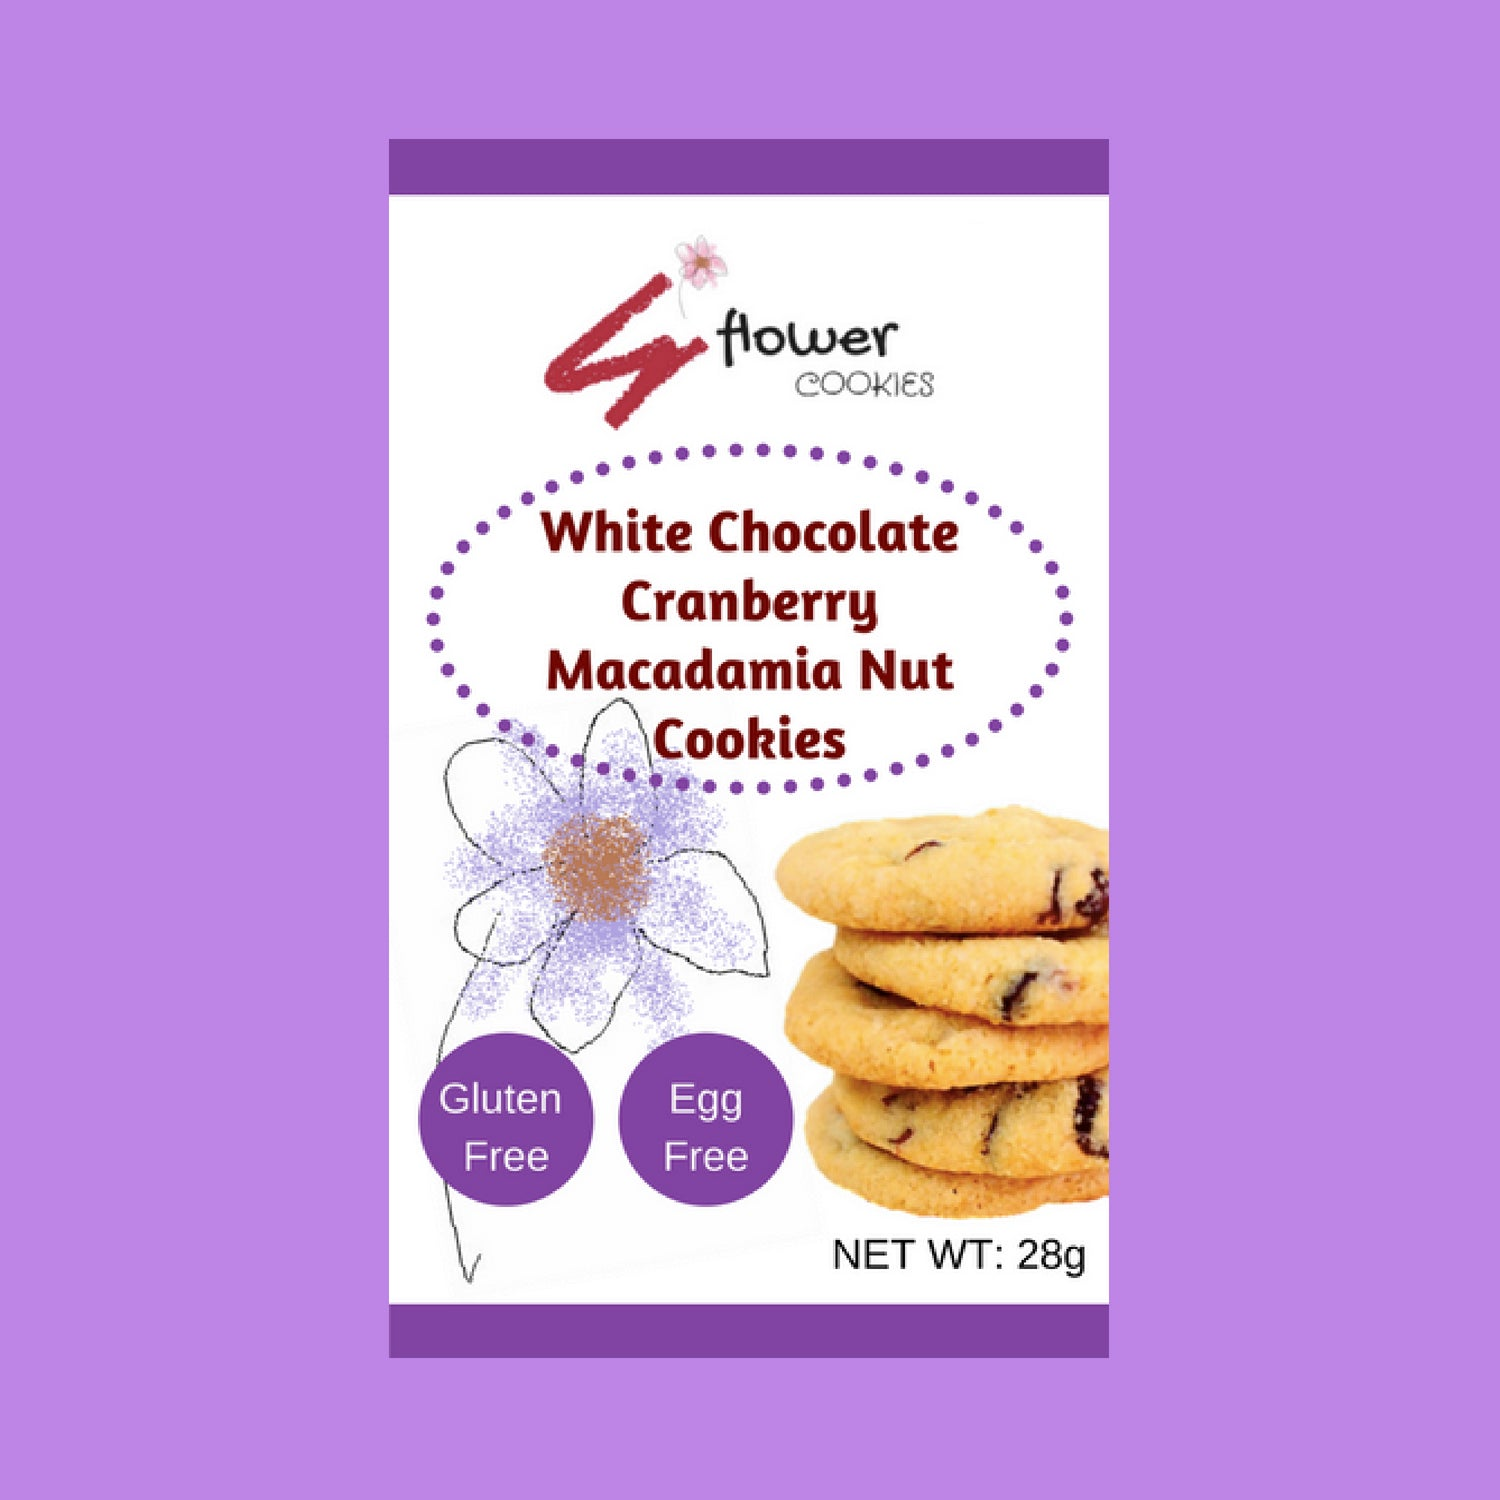 Gluten Free White Chocolate Cranberry Macadamia Nut Cookies